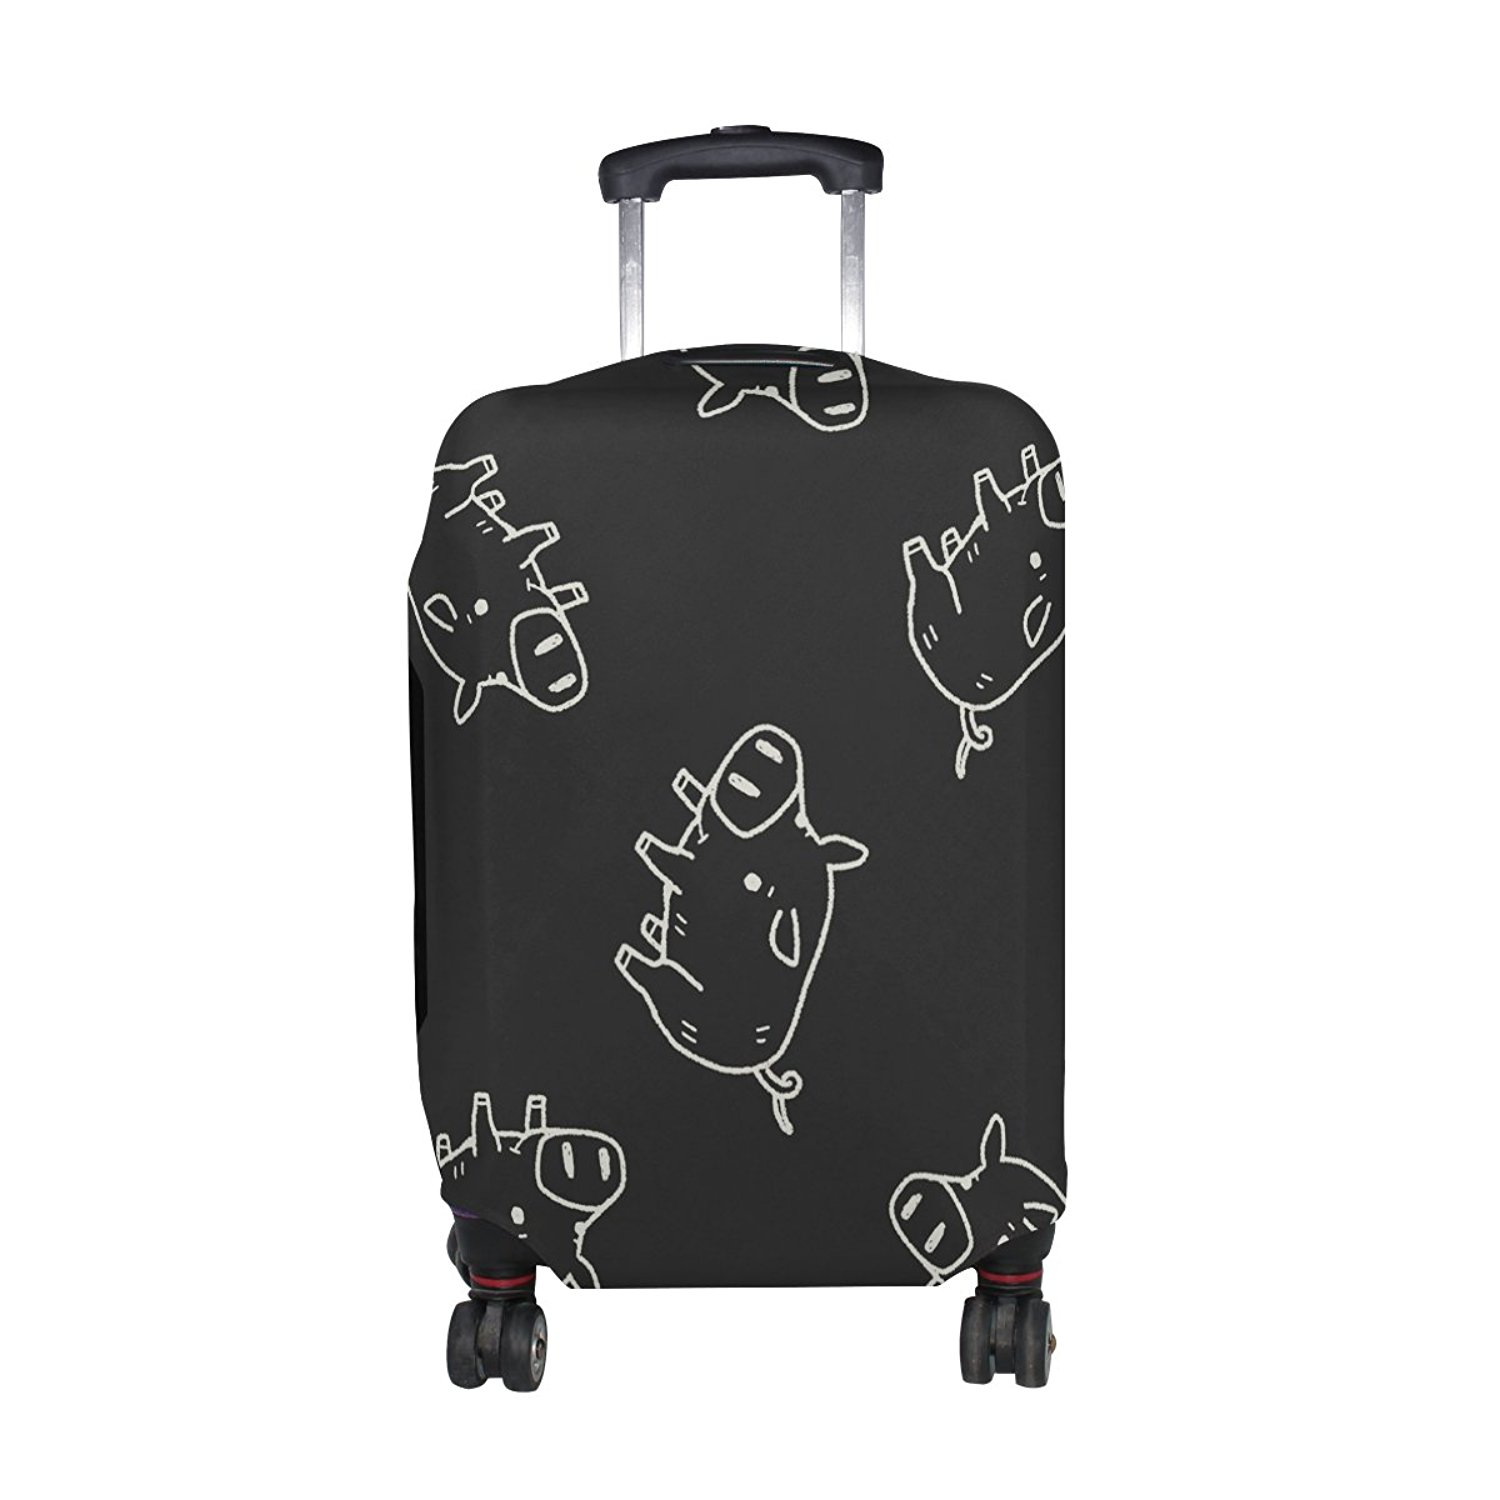 Super Elastic Travel Luggage Cover Angry Skull Anti-scratch Baggage Suitcase Protective Cover Fits 18-32 Inch Luggage